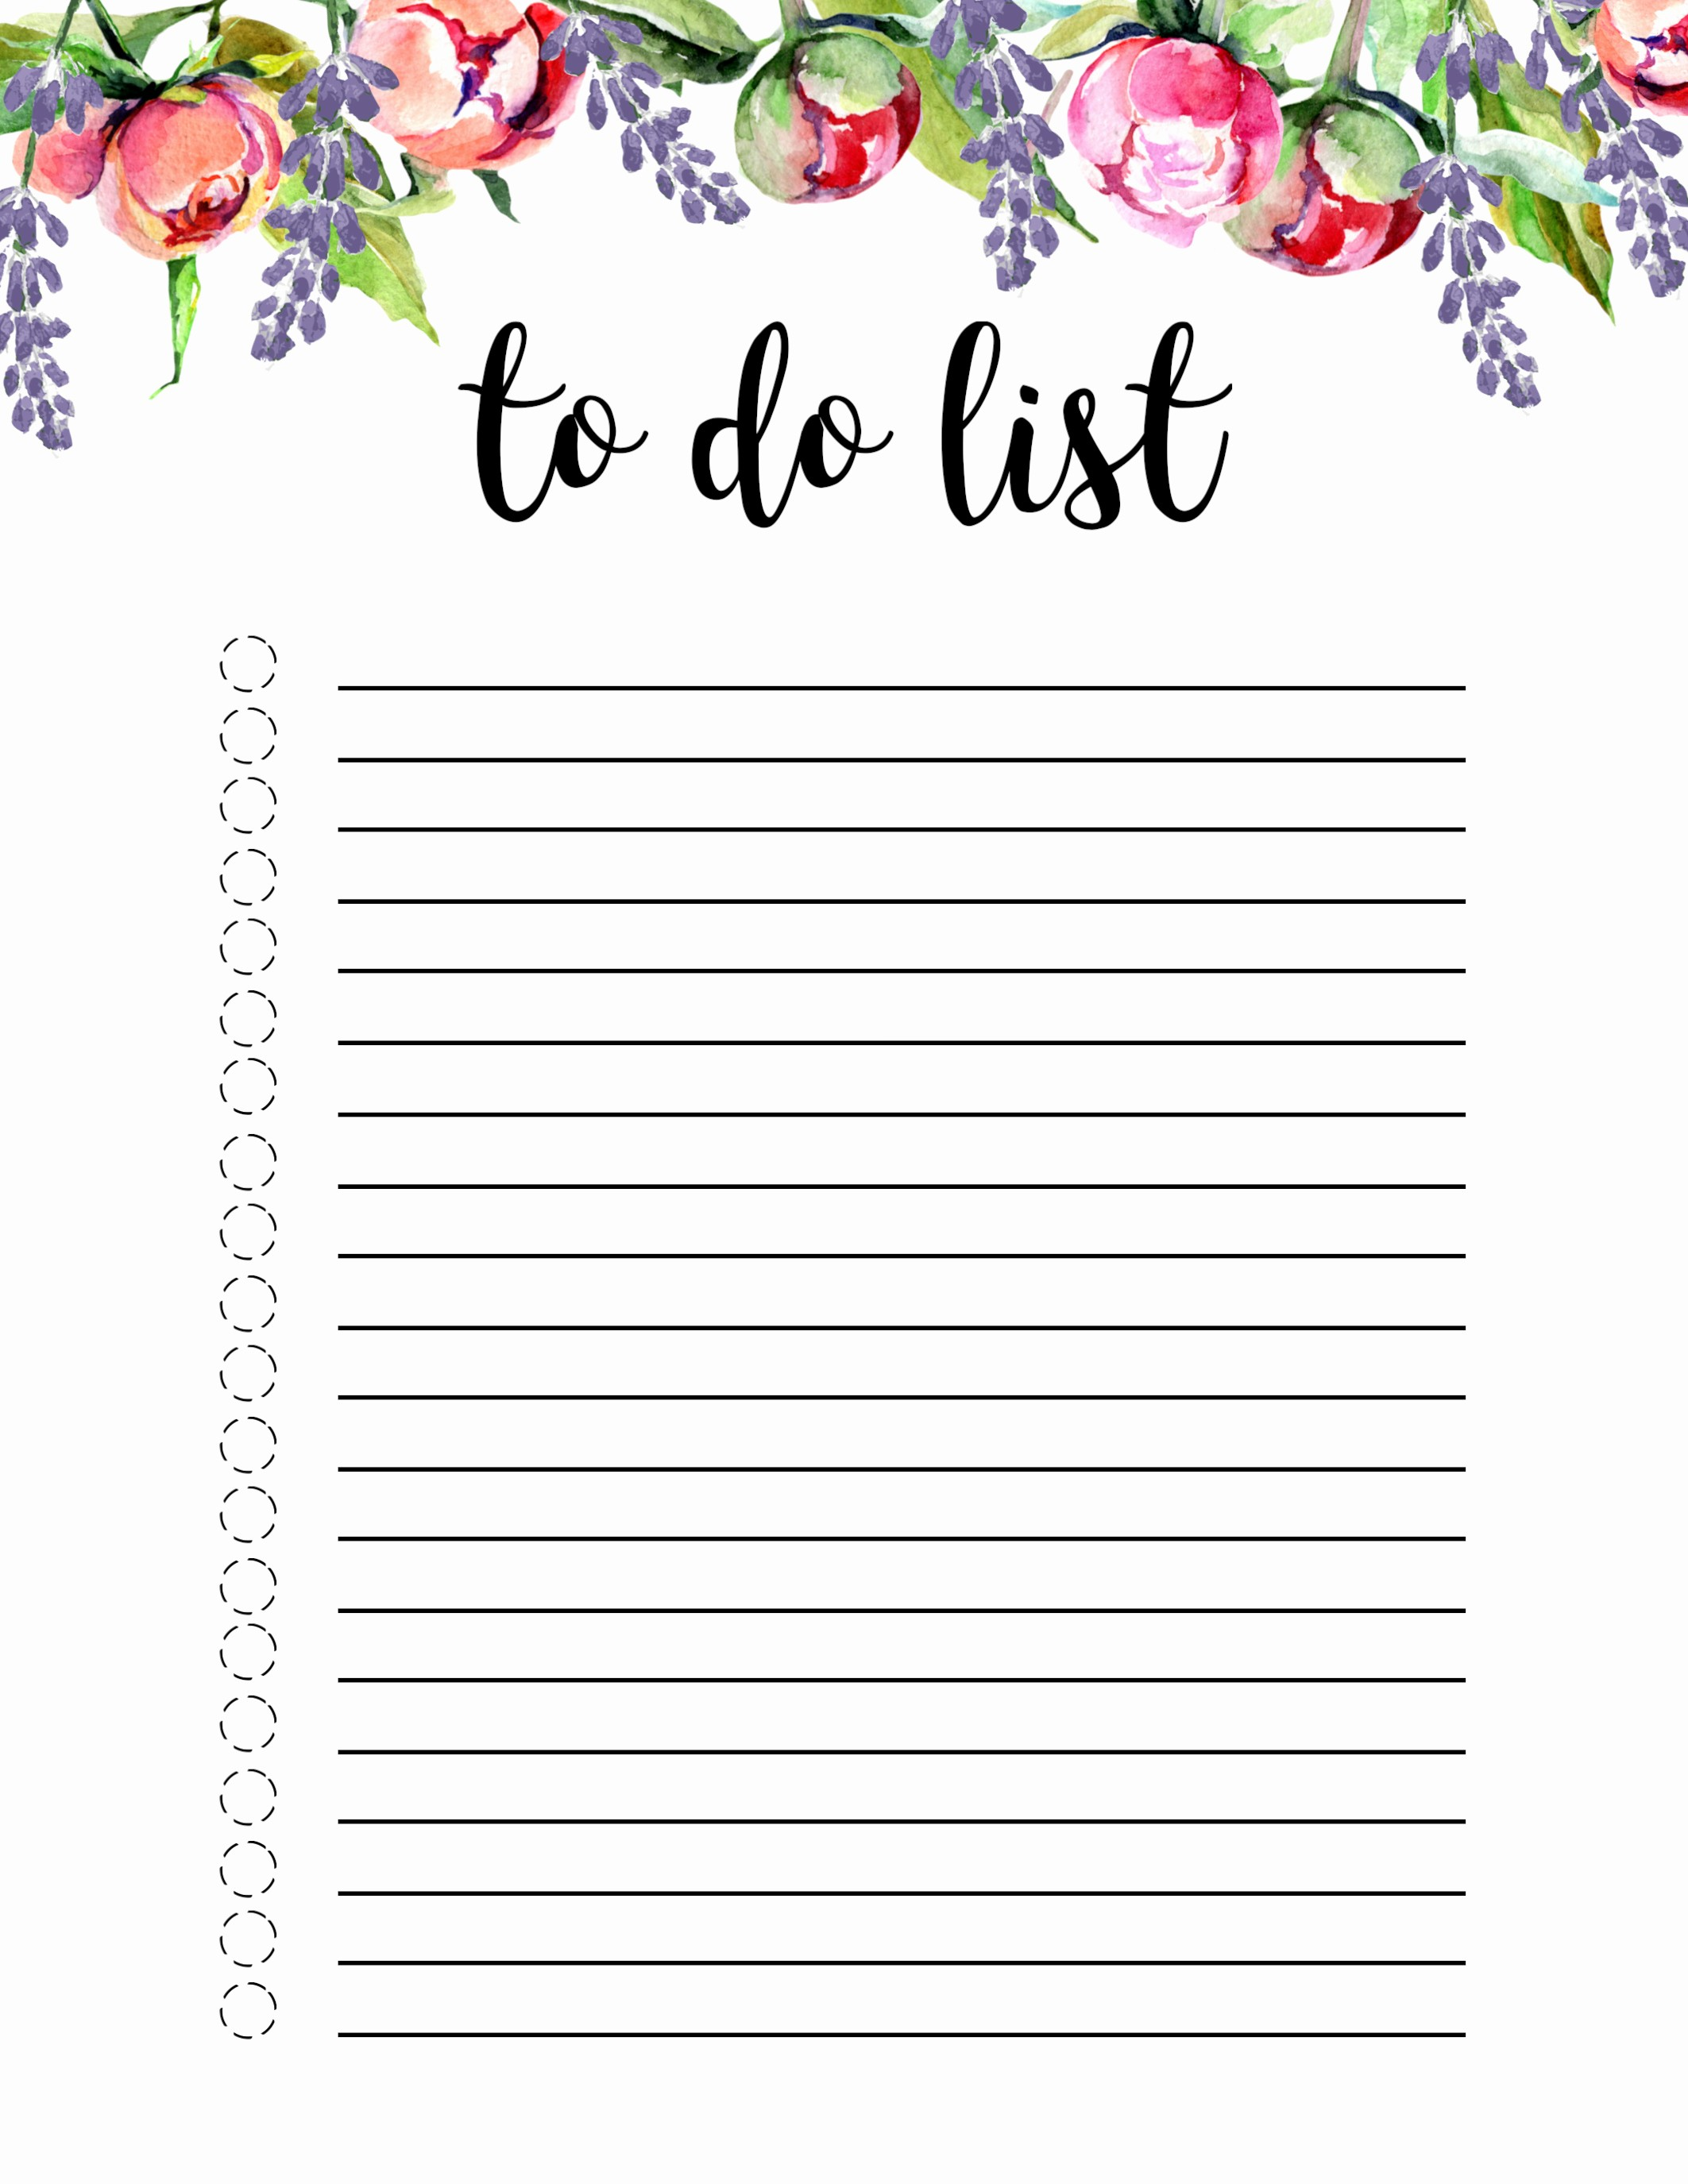 To Do List Templates Printable Luxury Floral to Do List Printable Template Paper Trail Design